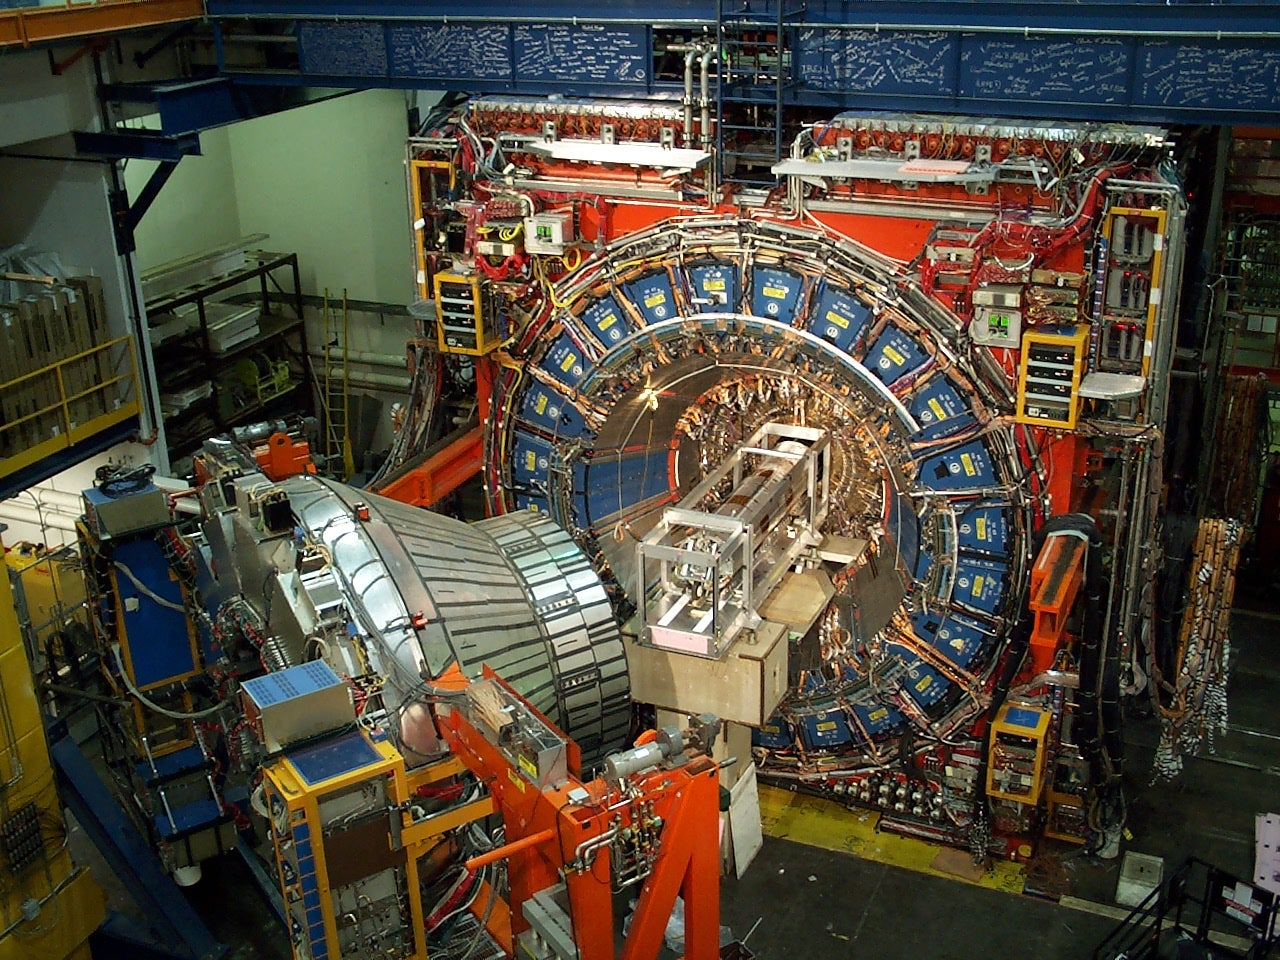 The Race to the Higgs Boson: LHC Versus Tevatron